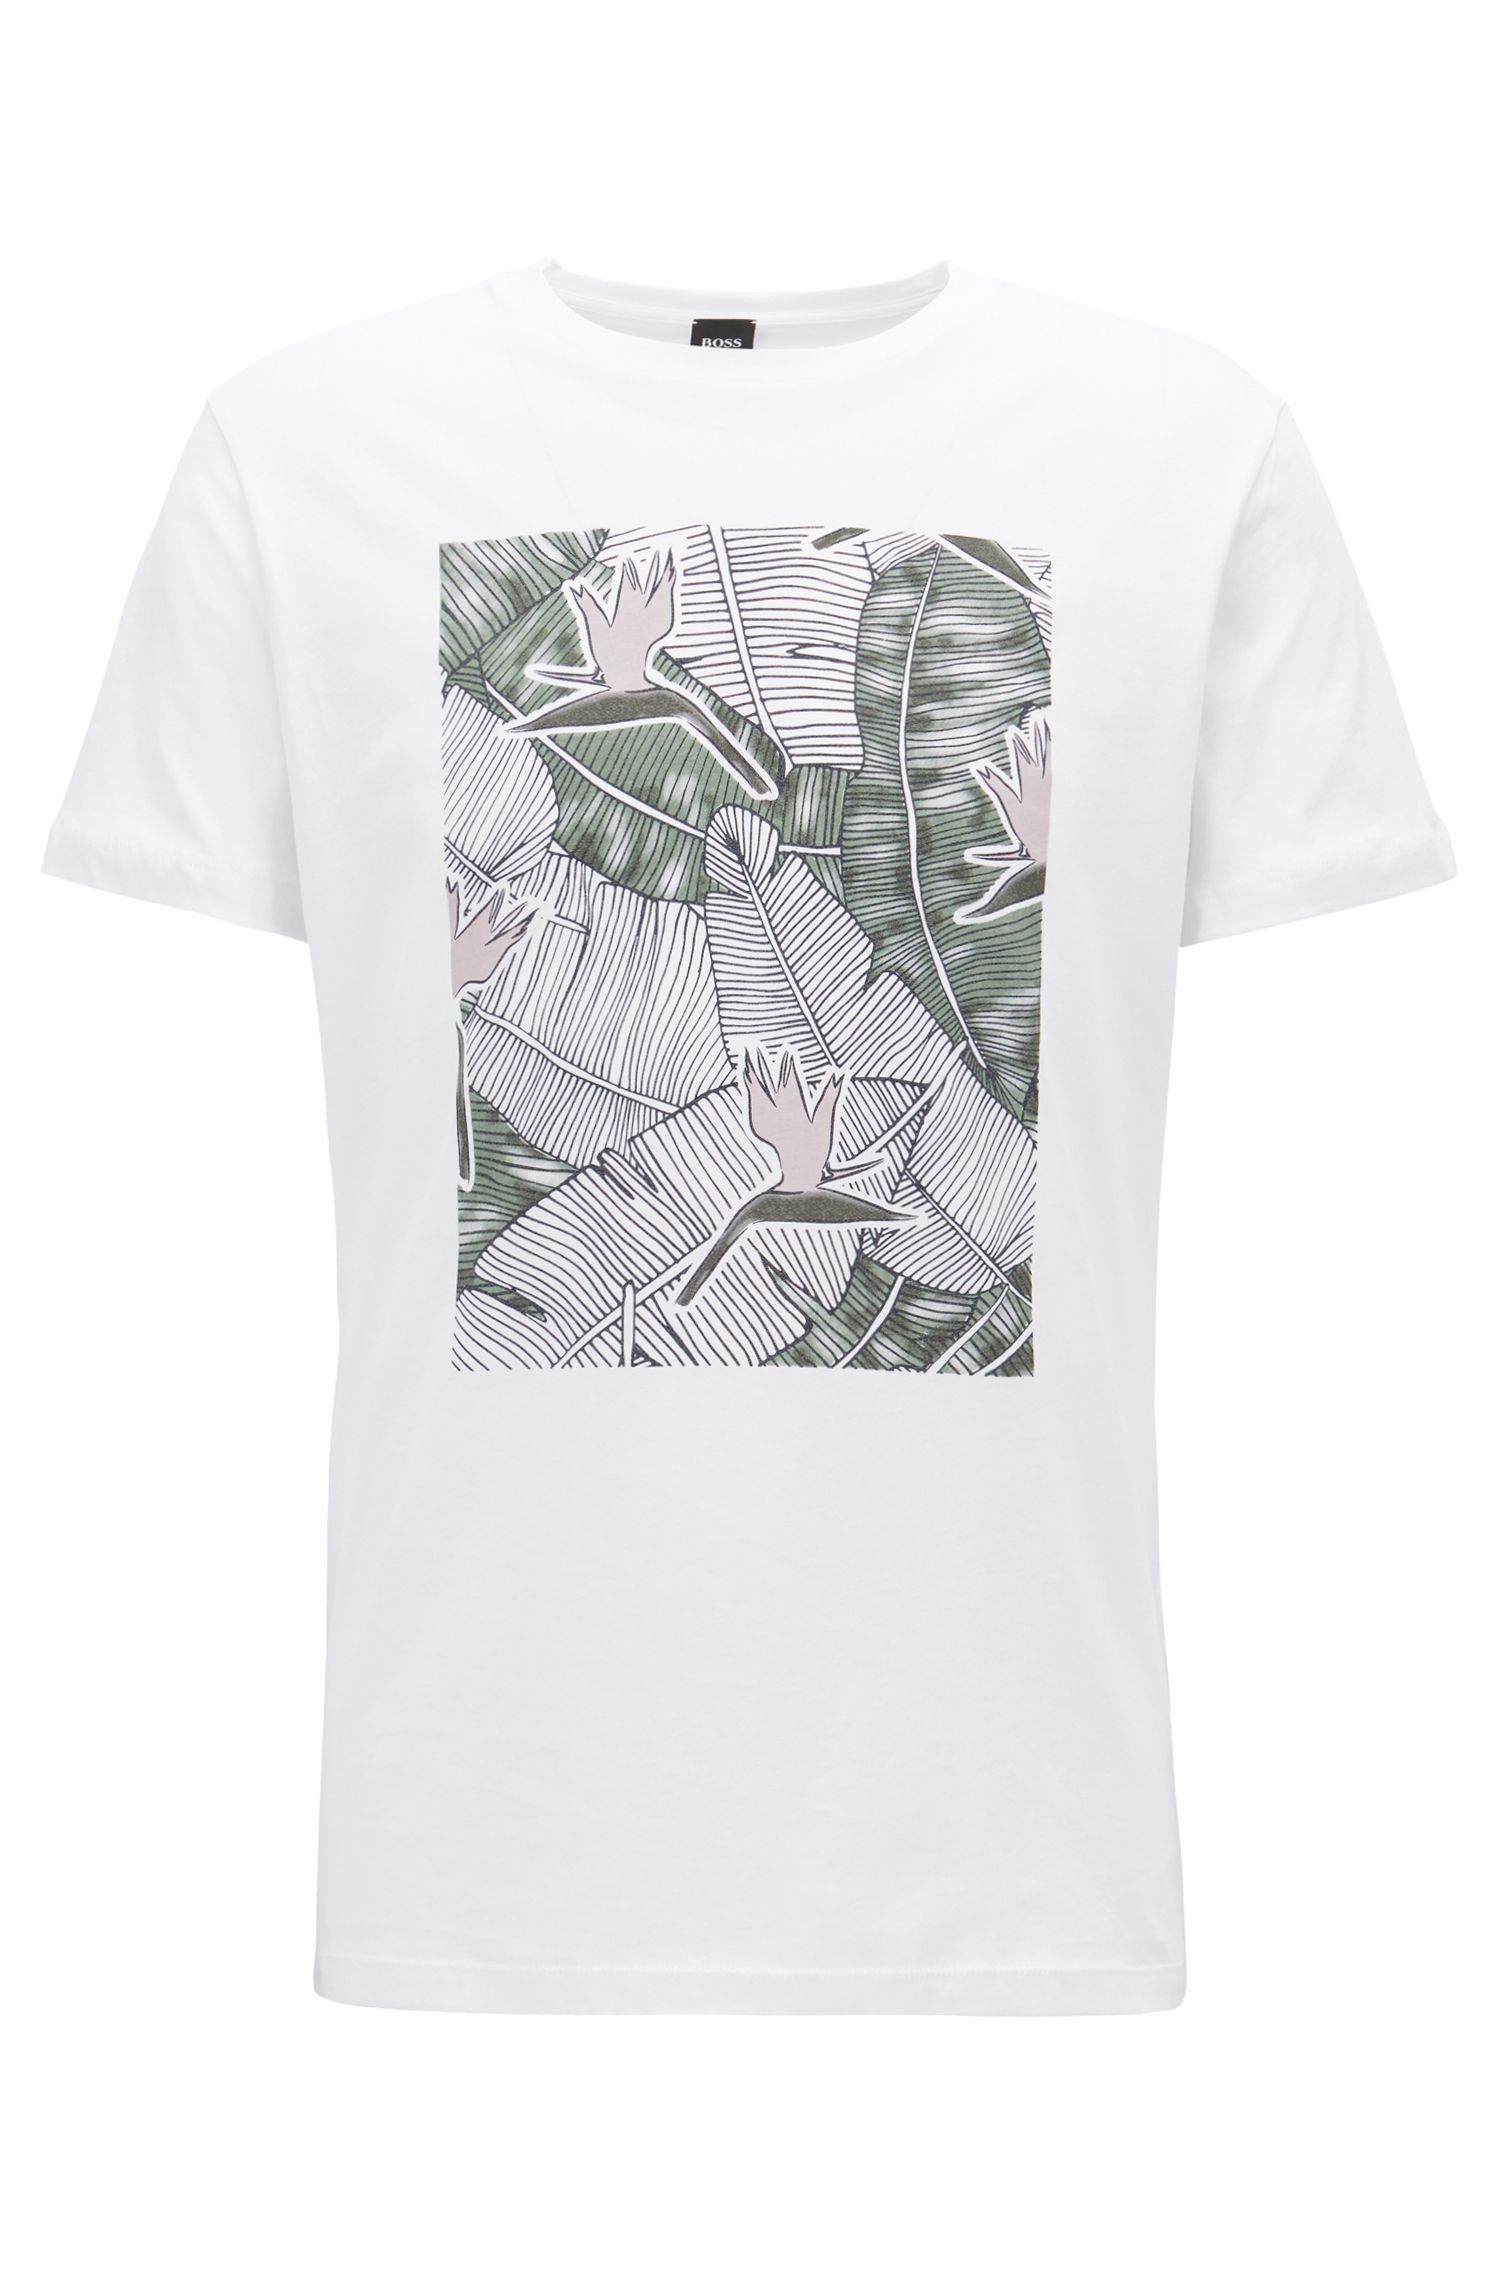 Graphic-print T-shirt in washed cotton jersey